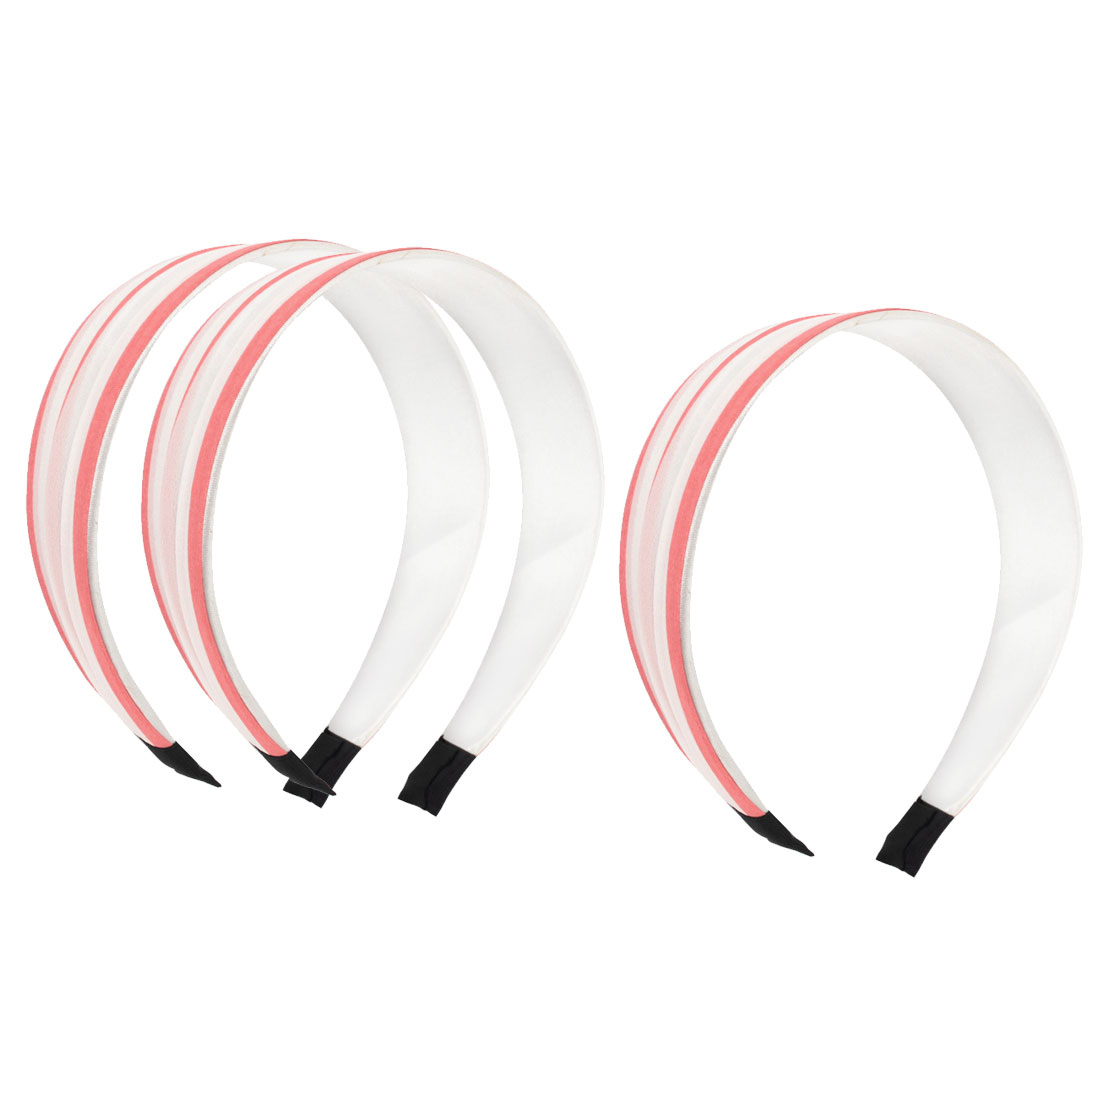 "3 Pcs Pink White Nylon Cloth Wrap Headdressing 1.5"" Width Plastic Frame Wide Hair Band Hair Hoop for Lady"